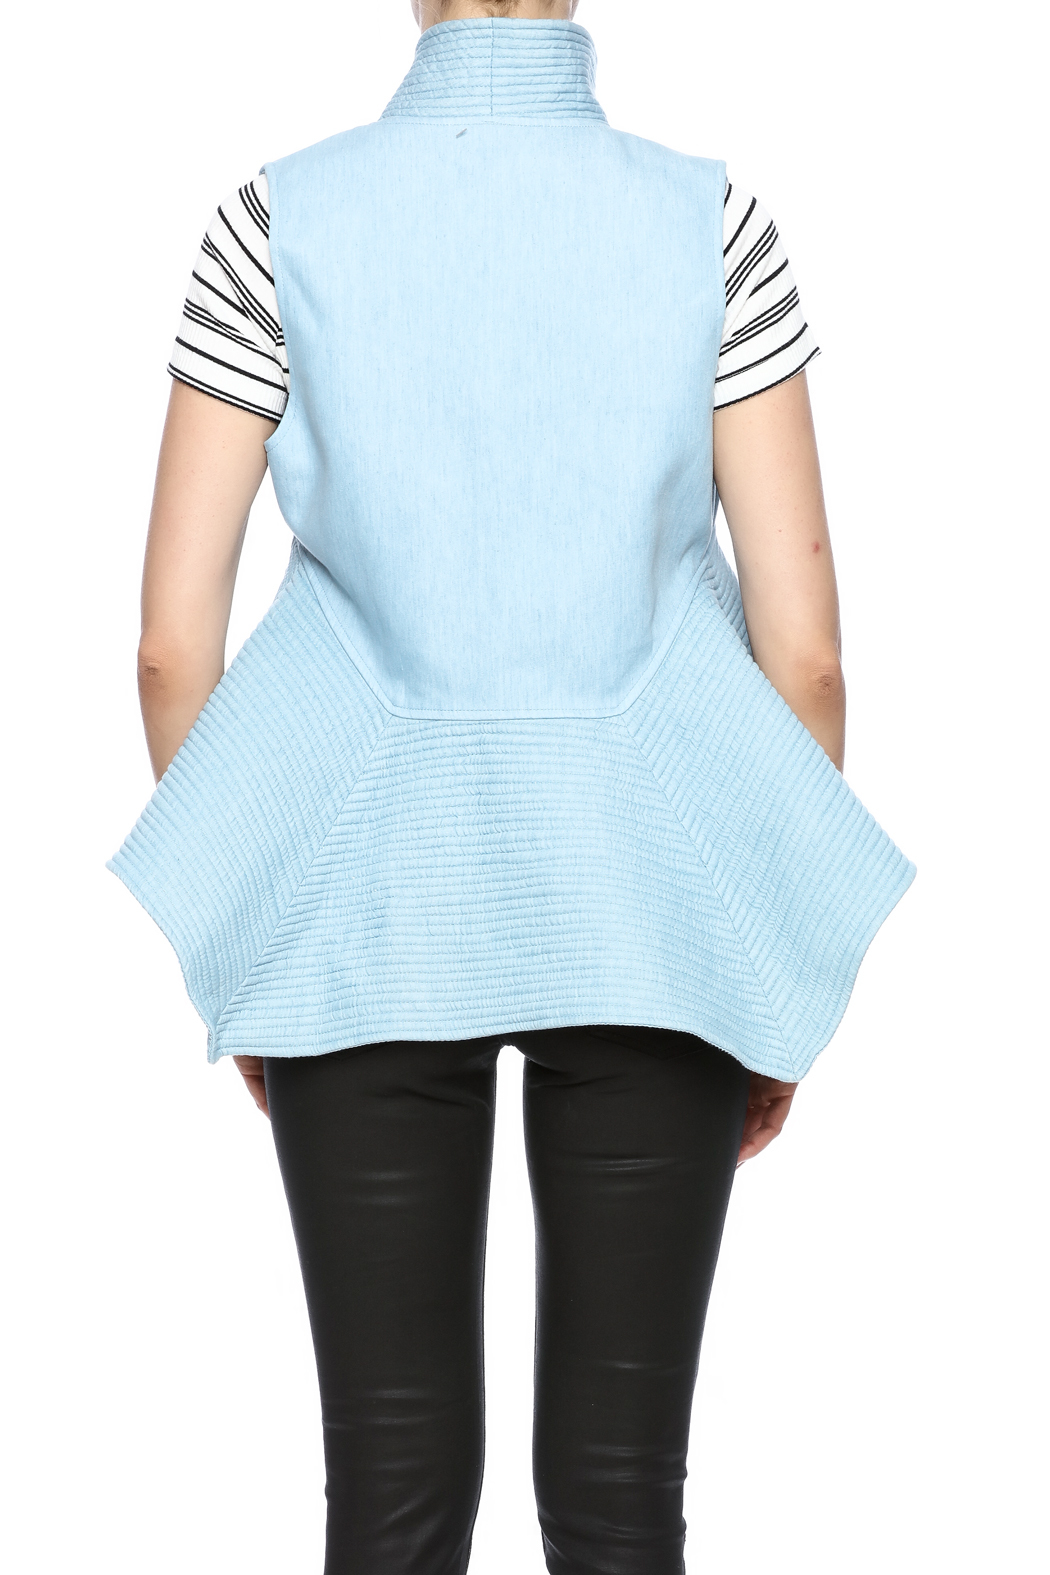 cq by cq Quilted Flare Vest - Back Cropped Image